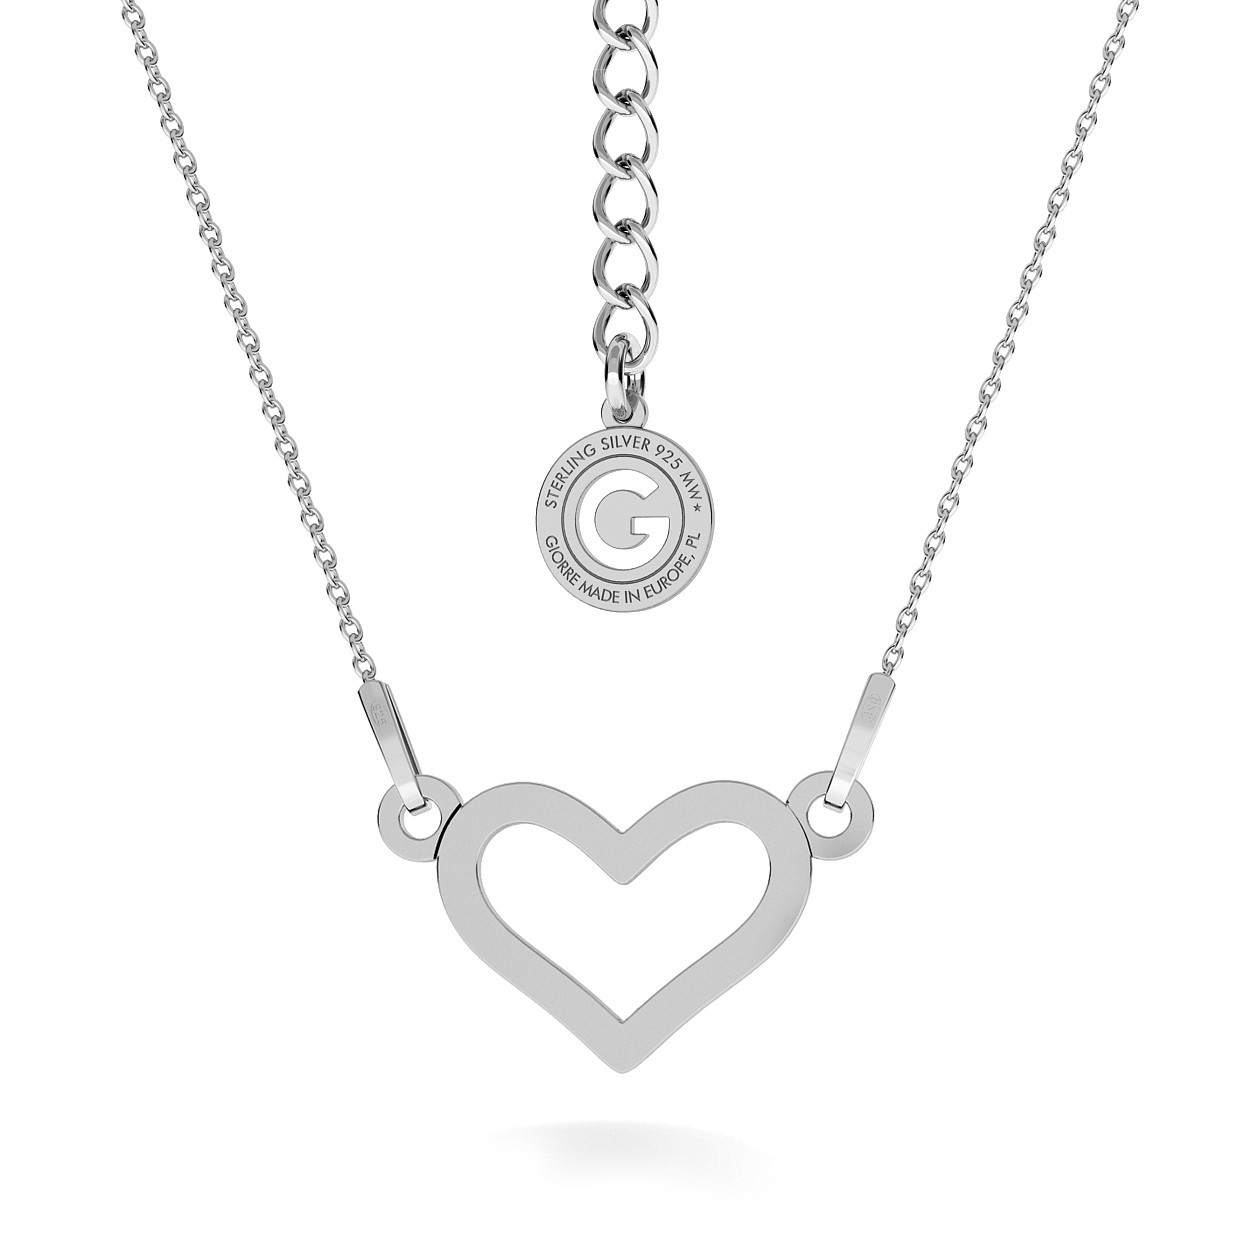 SIMPLY HEART NECKLACE, RHODIUM OR 24K / 18K GOLD PLATED